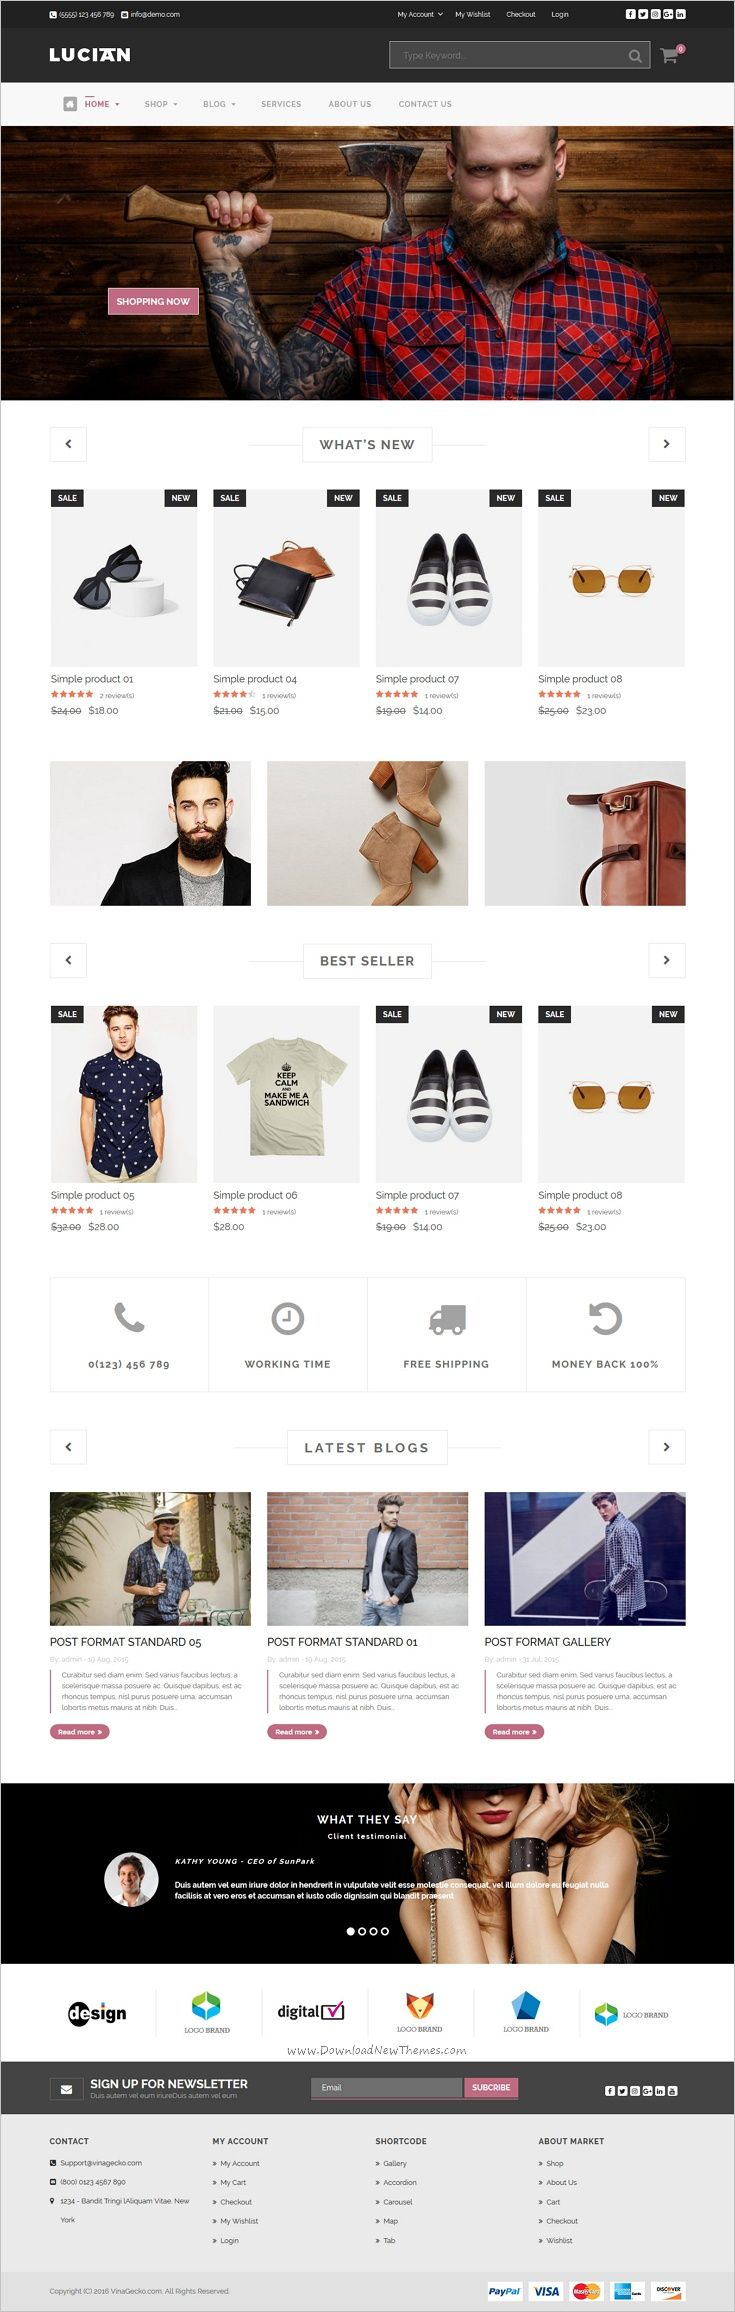 VG Lucian is a well-designed responsive #WooCommerce #WordPress theme for #webdev stunning eCommerce website with 8 unique homepage layouts download now➩ https://themeforest.net/item/vg-lucian-responsive-ecommerce-wordpress-theme/17042399?ref=Datasata